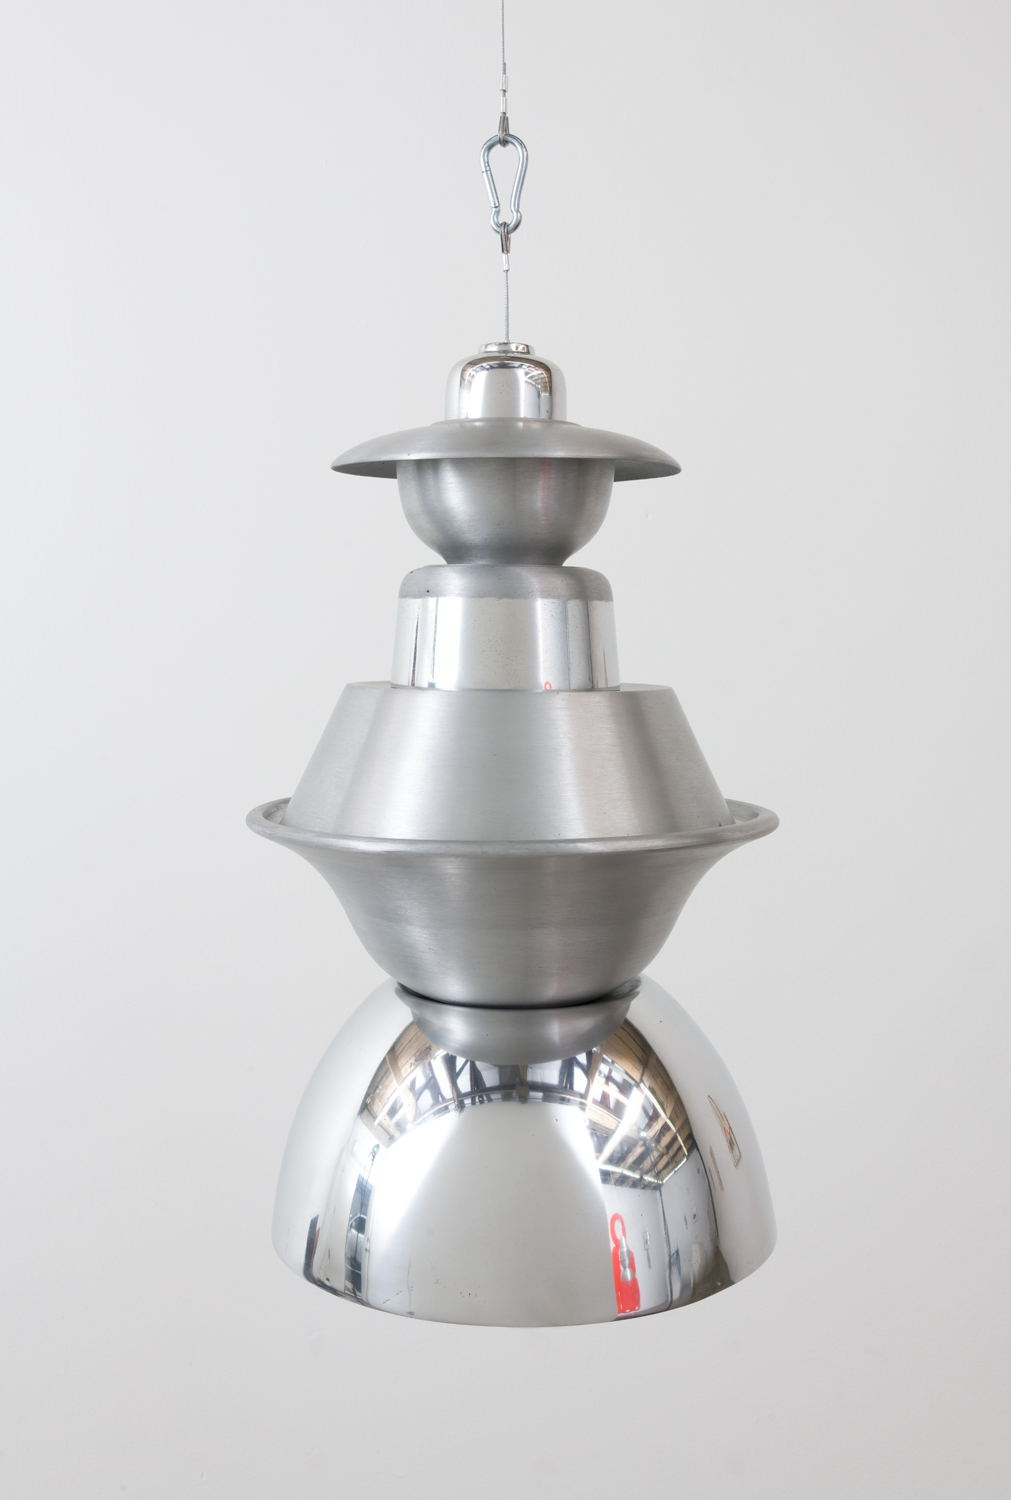 Weather Balloon, 2018  Cast Aluminum  22 x 13 inches